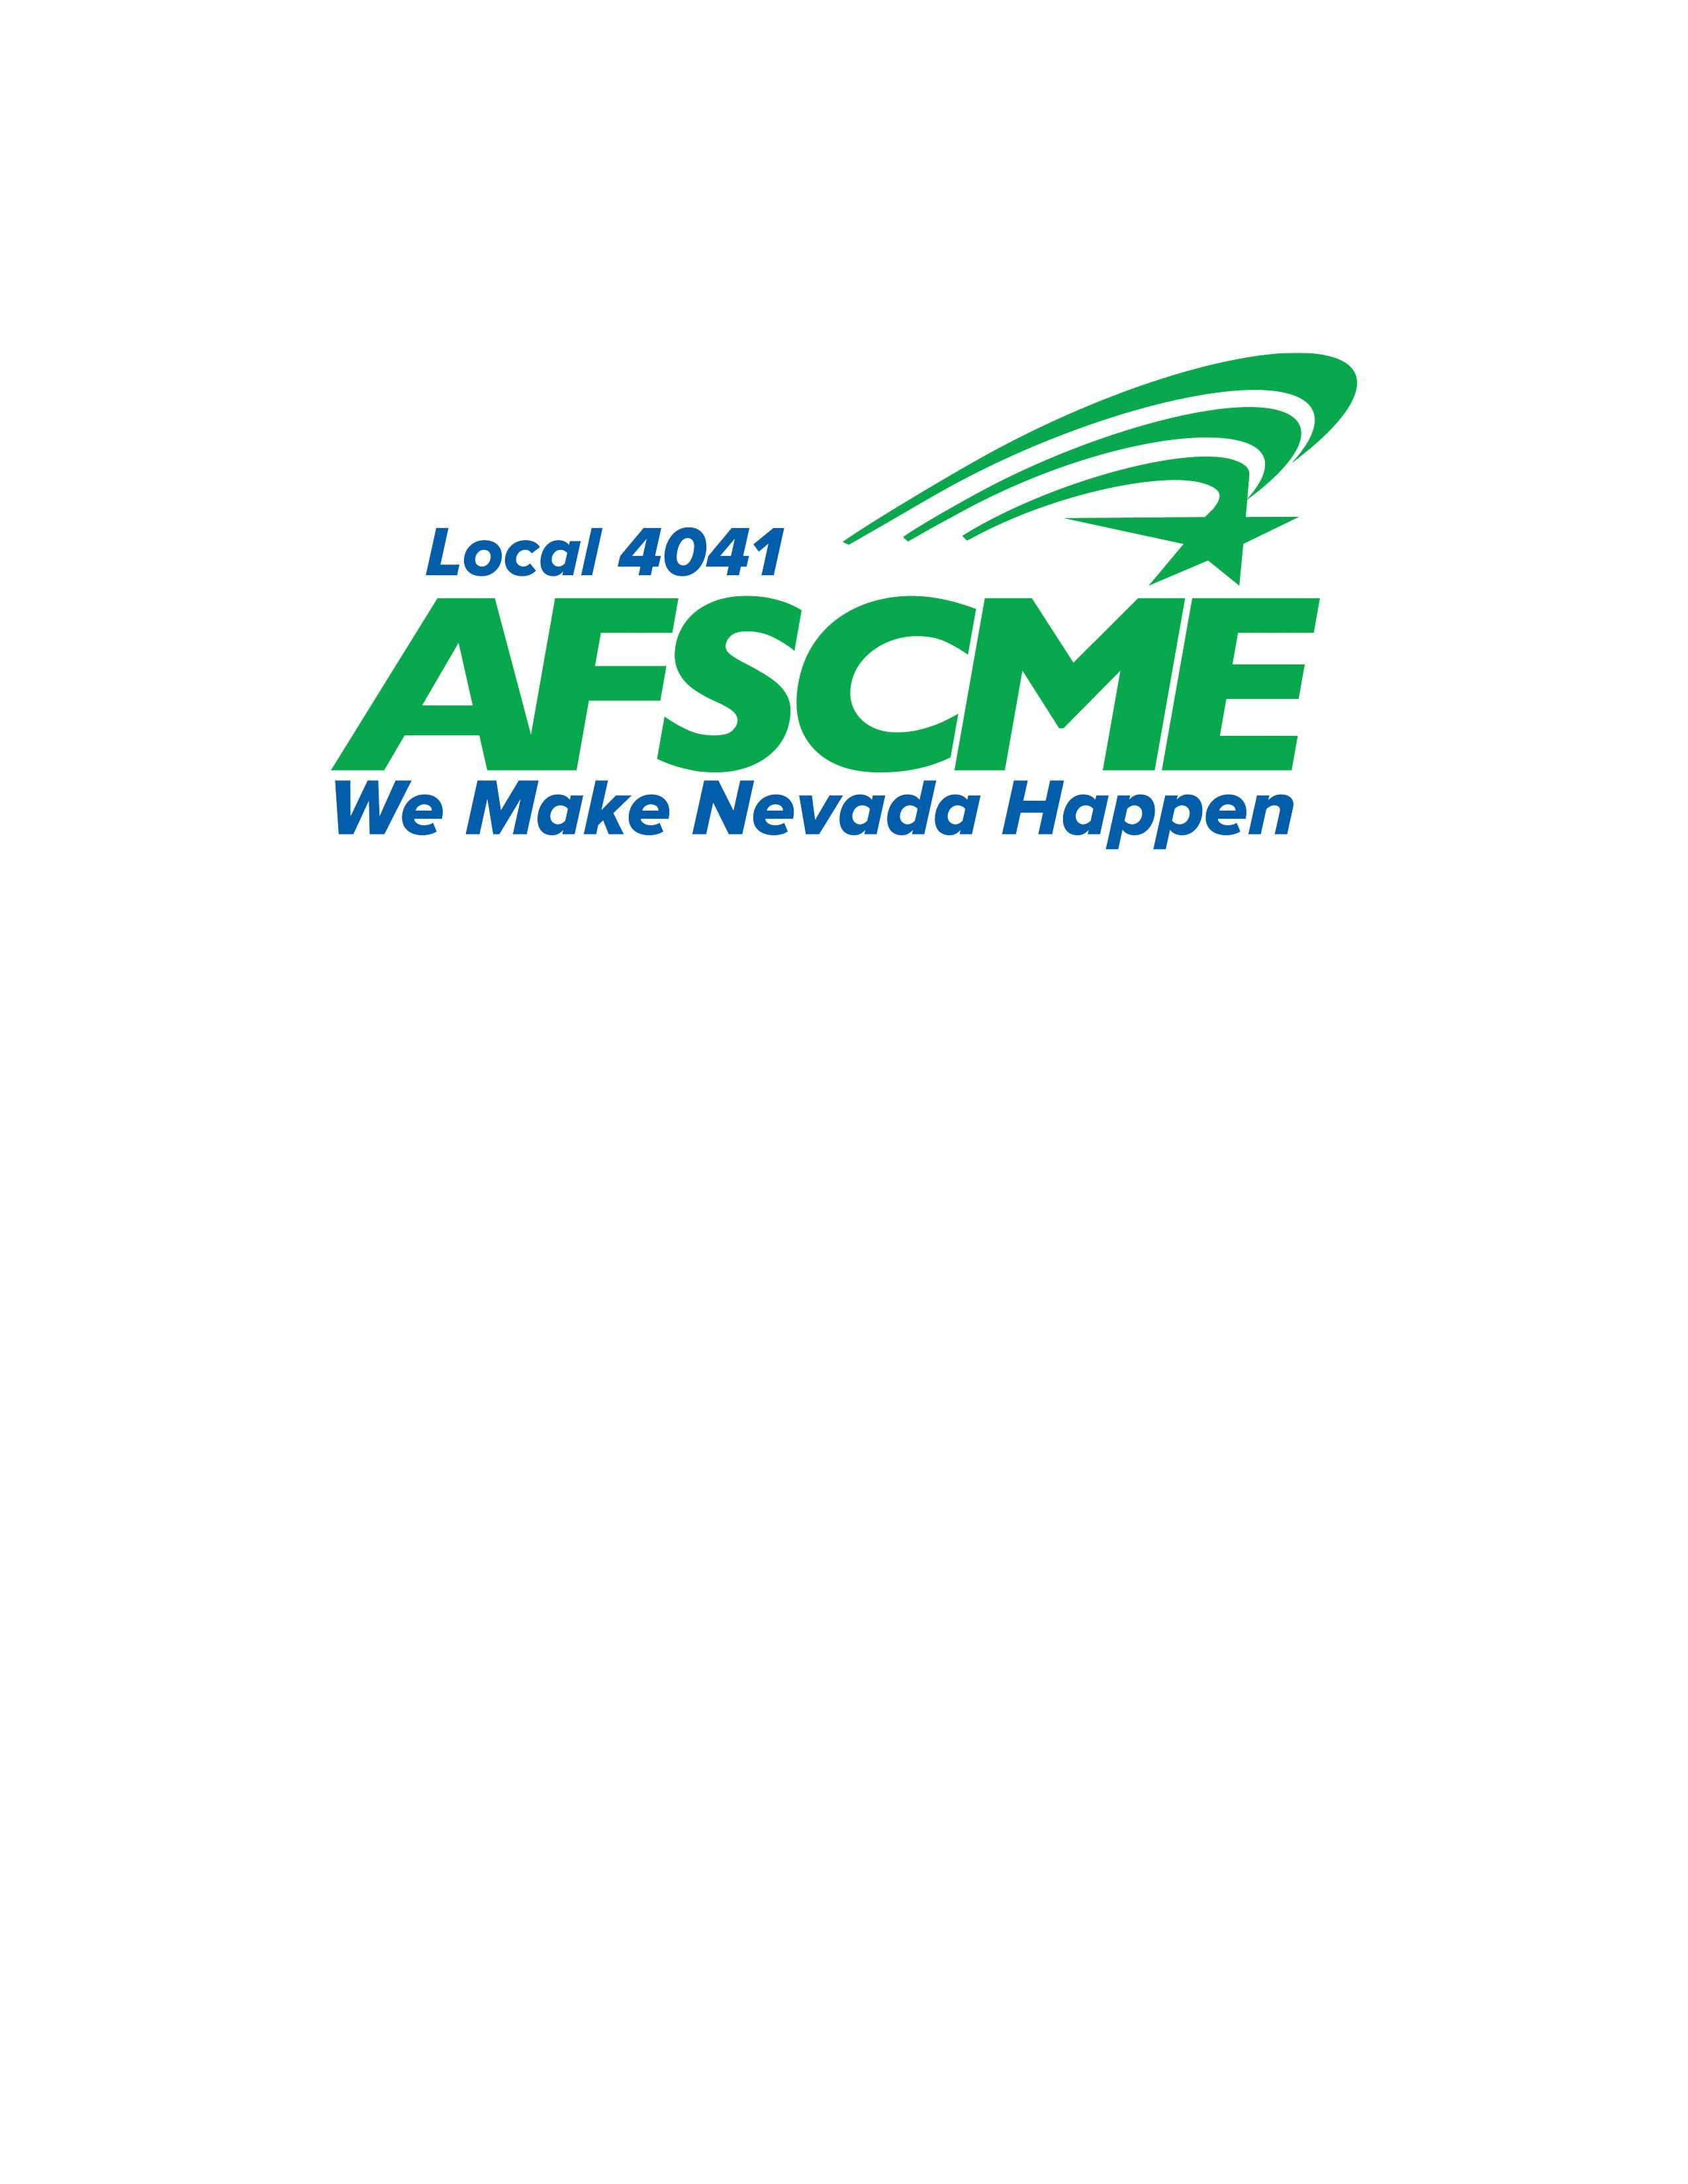 AFSCME Local 404 logo